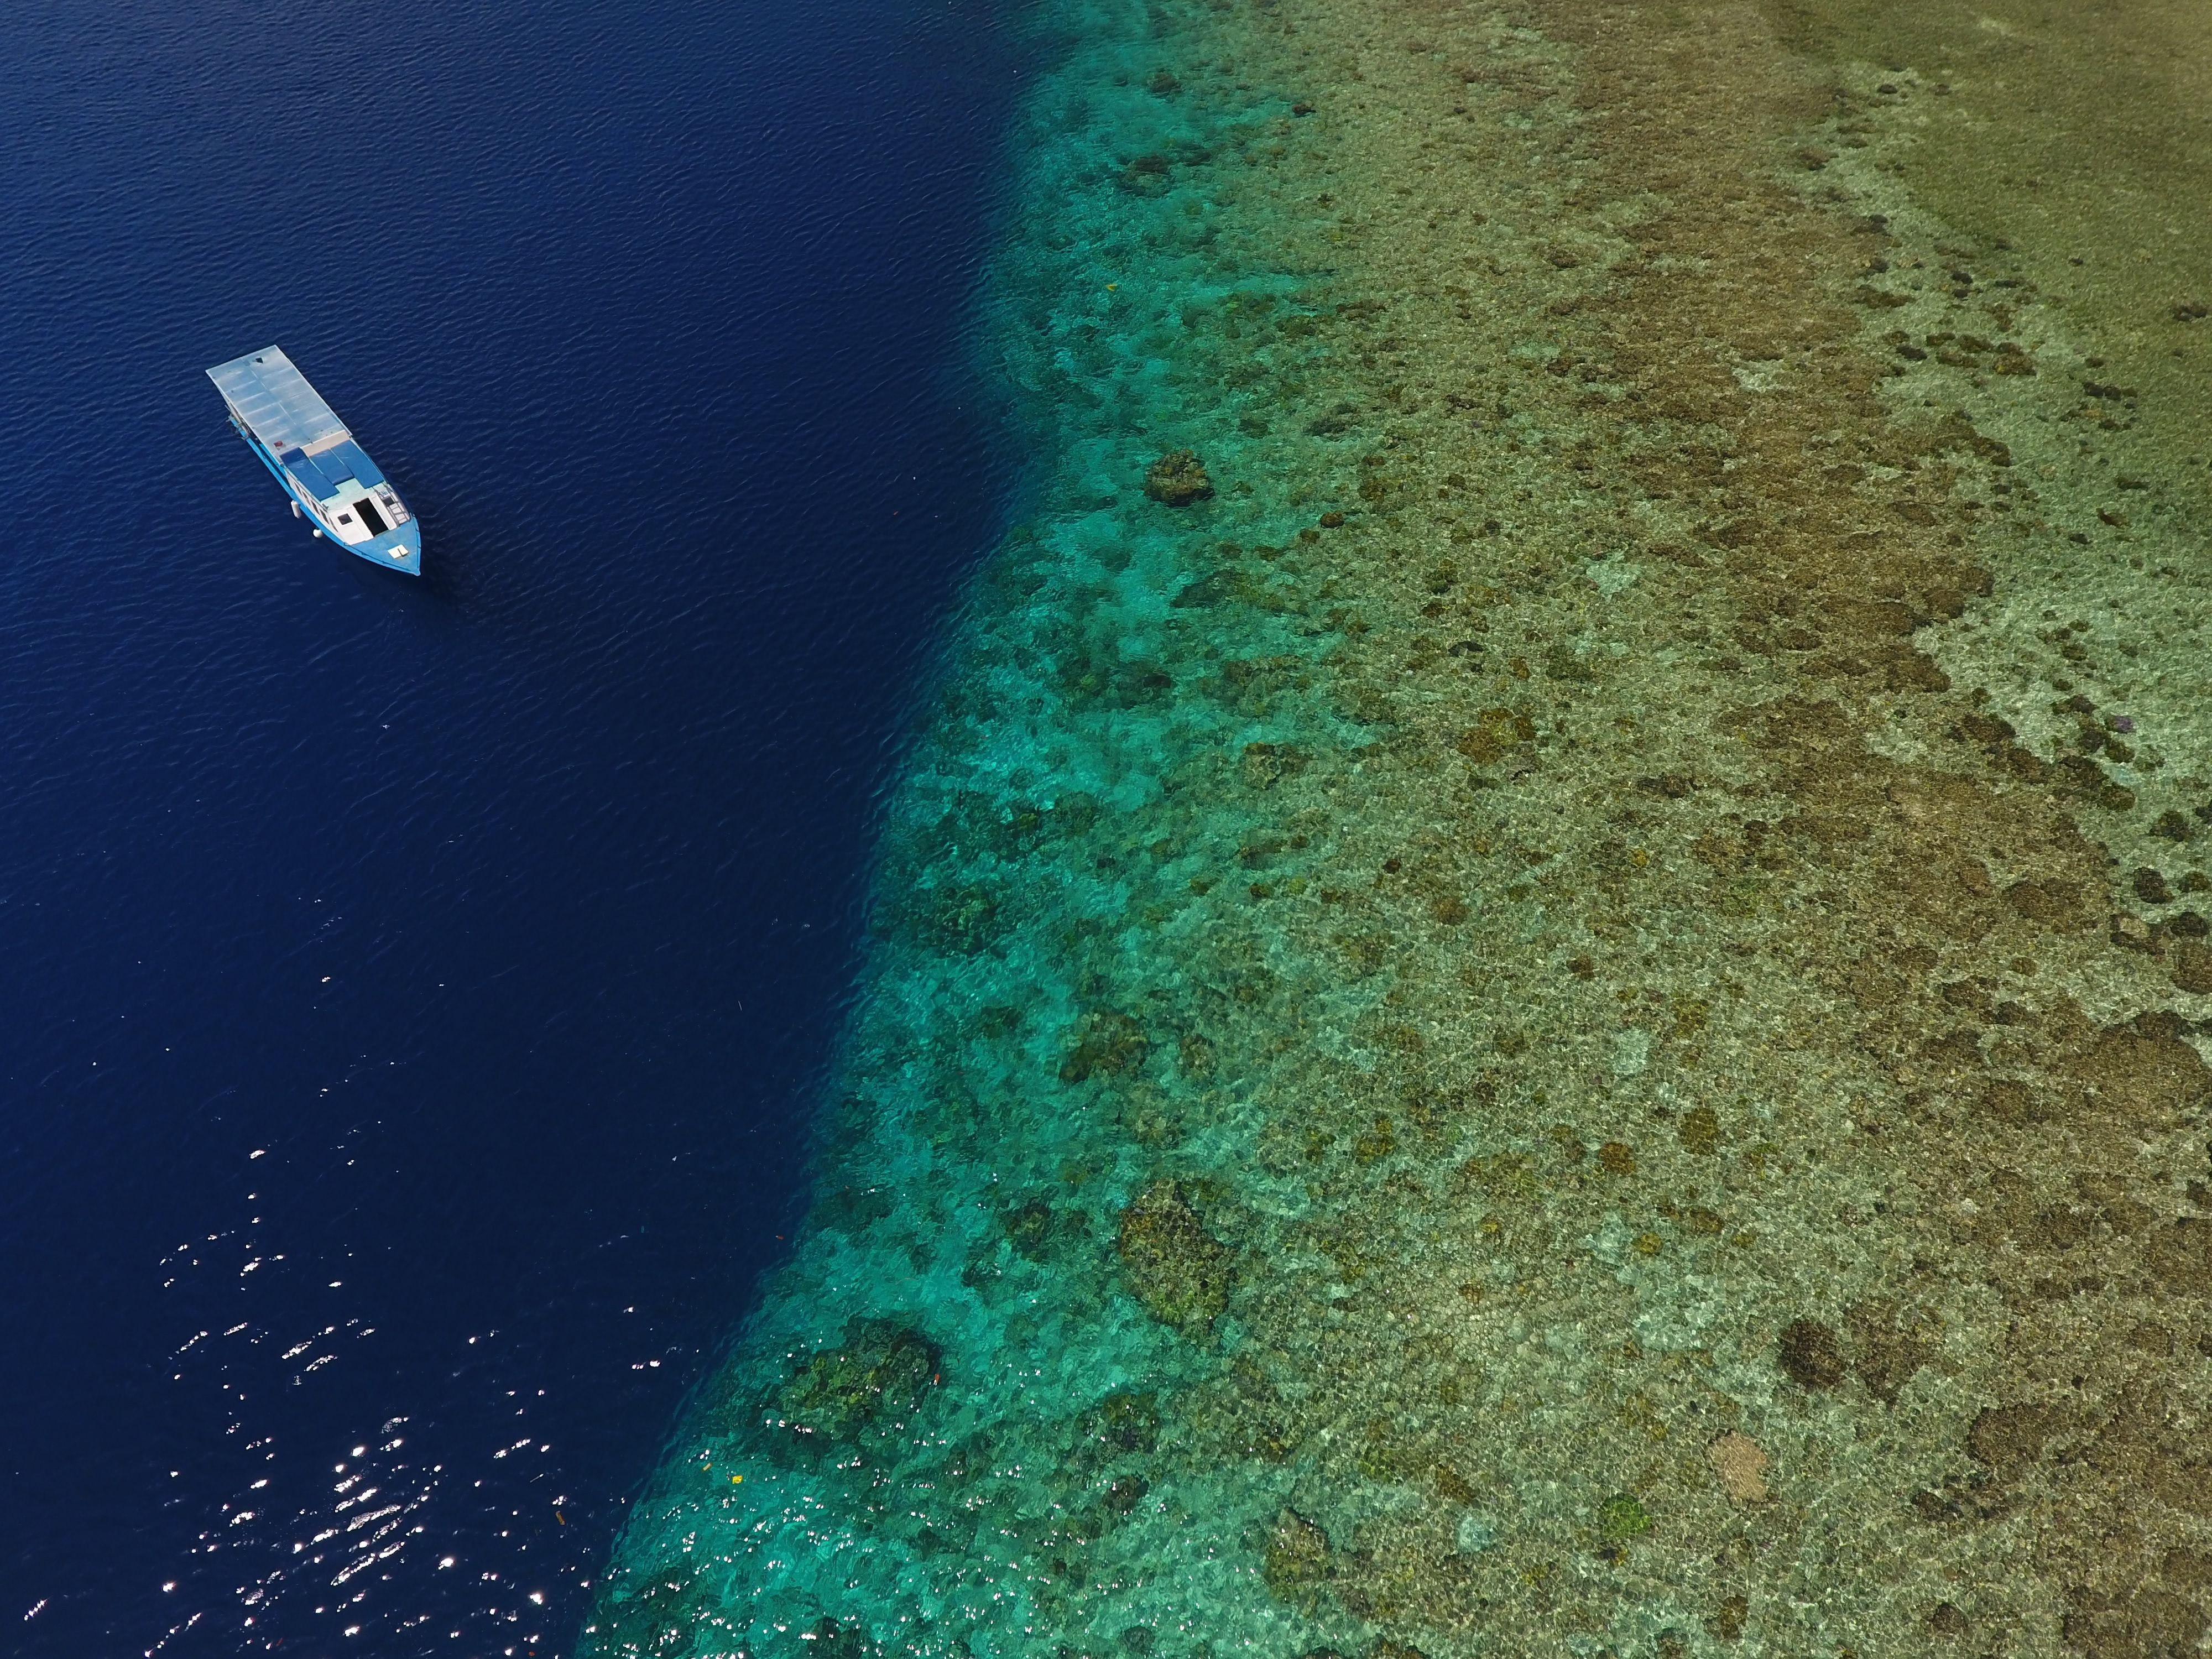 Scuba diving boat next to coral reef on tropical sea in Manado Indonesia.